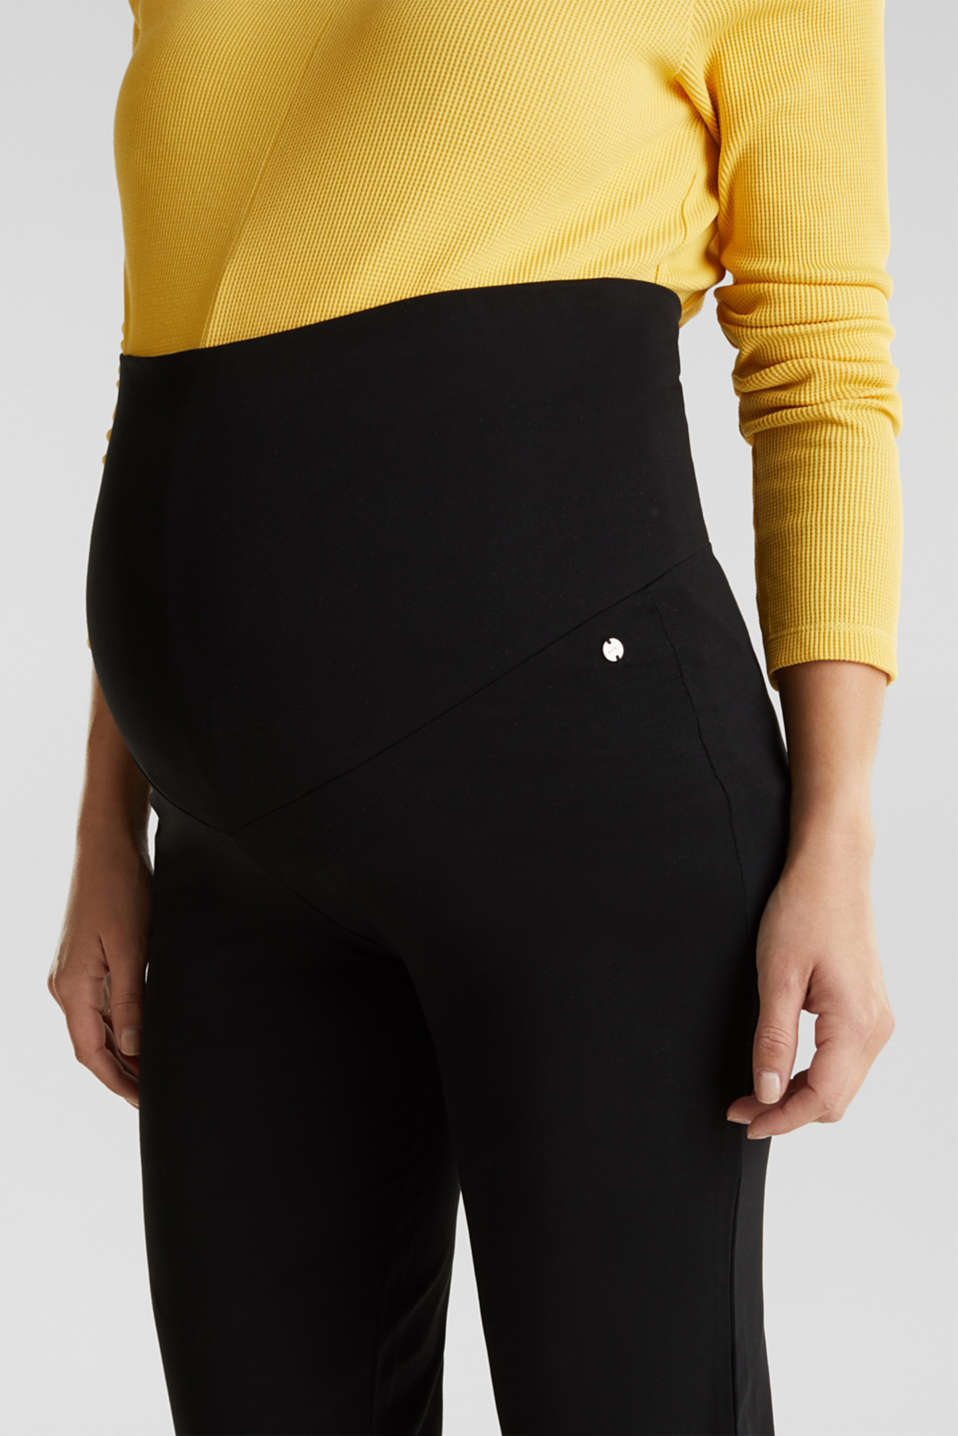 Stretch jersey trousers with an over-bump waistband, LCBLACK, detail image number 1